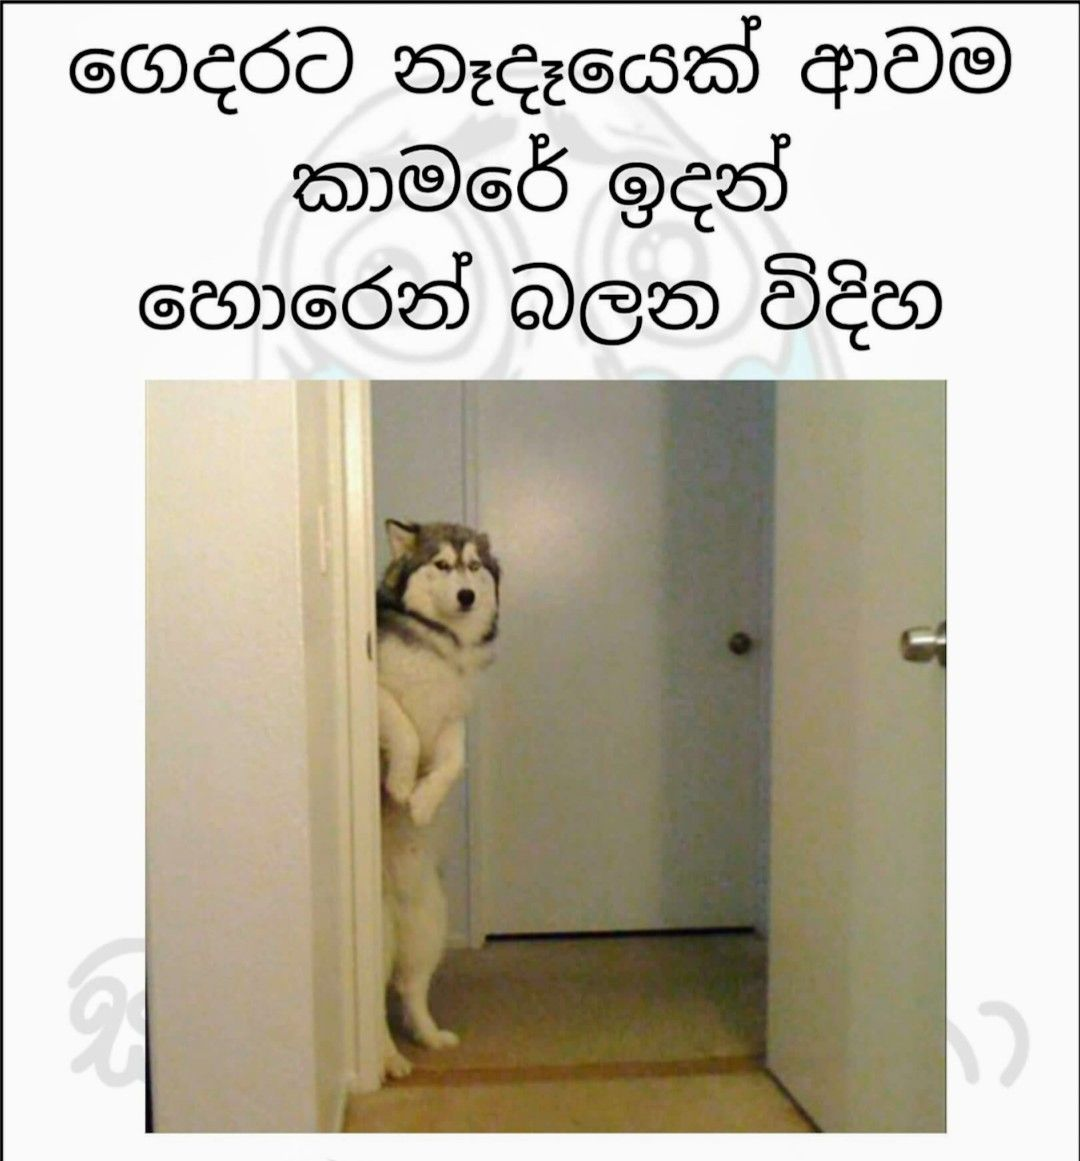 Pin By Malie On Lankan Memes Fun Quotes Funny Jokes Quotes Funny School Jokes